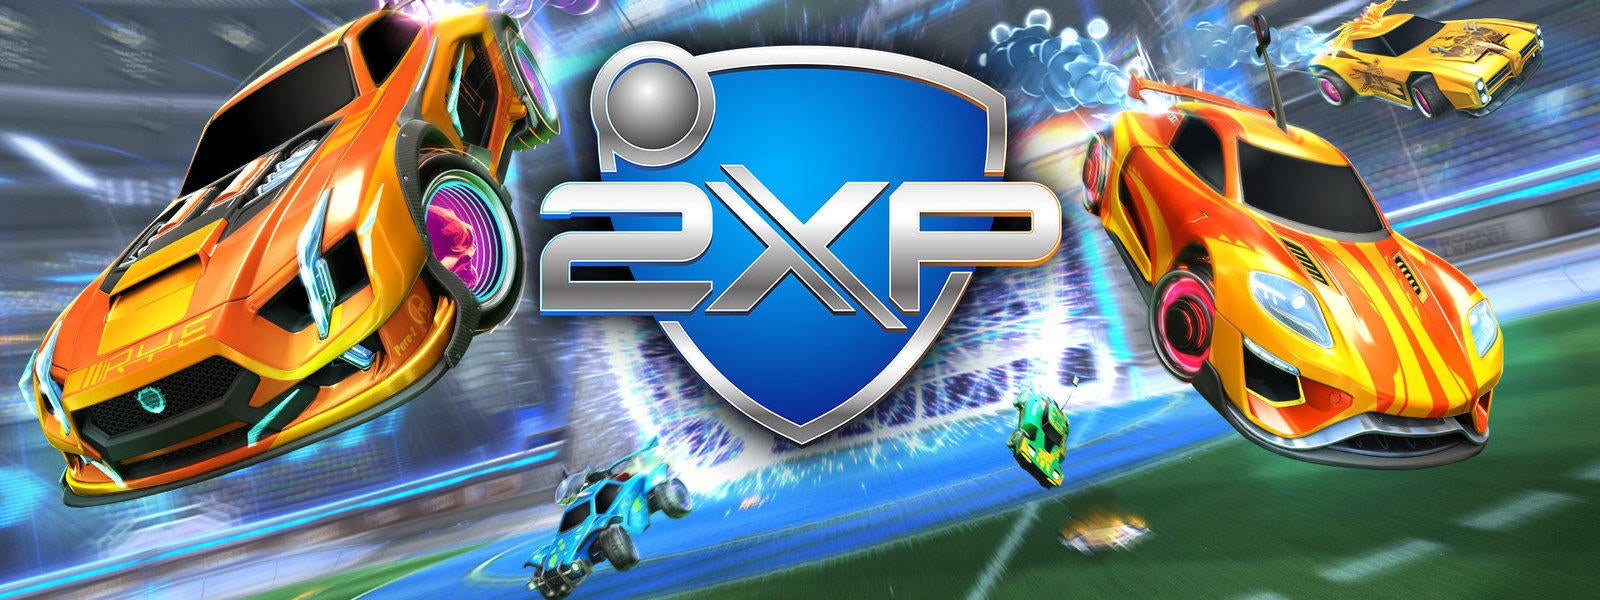 how to get crates fast in rocket league xbox one